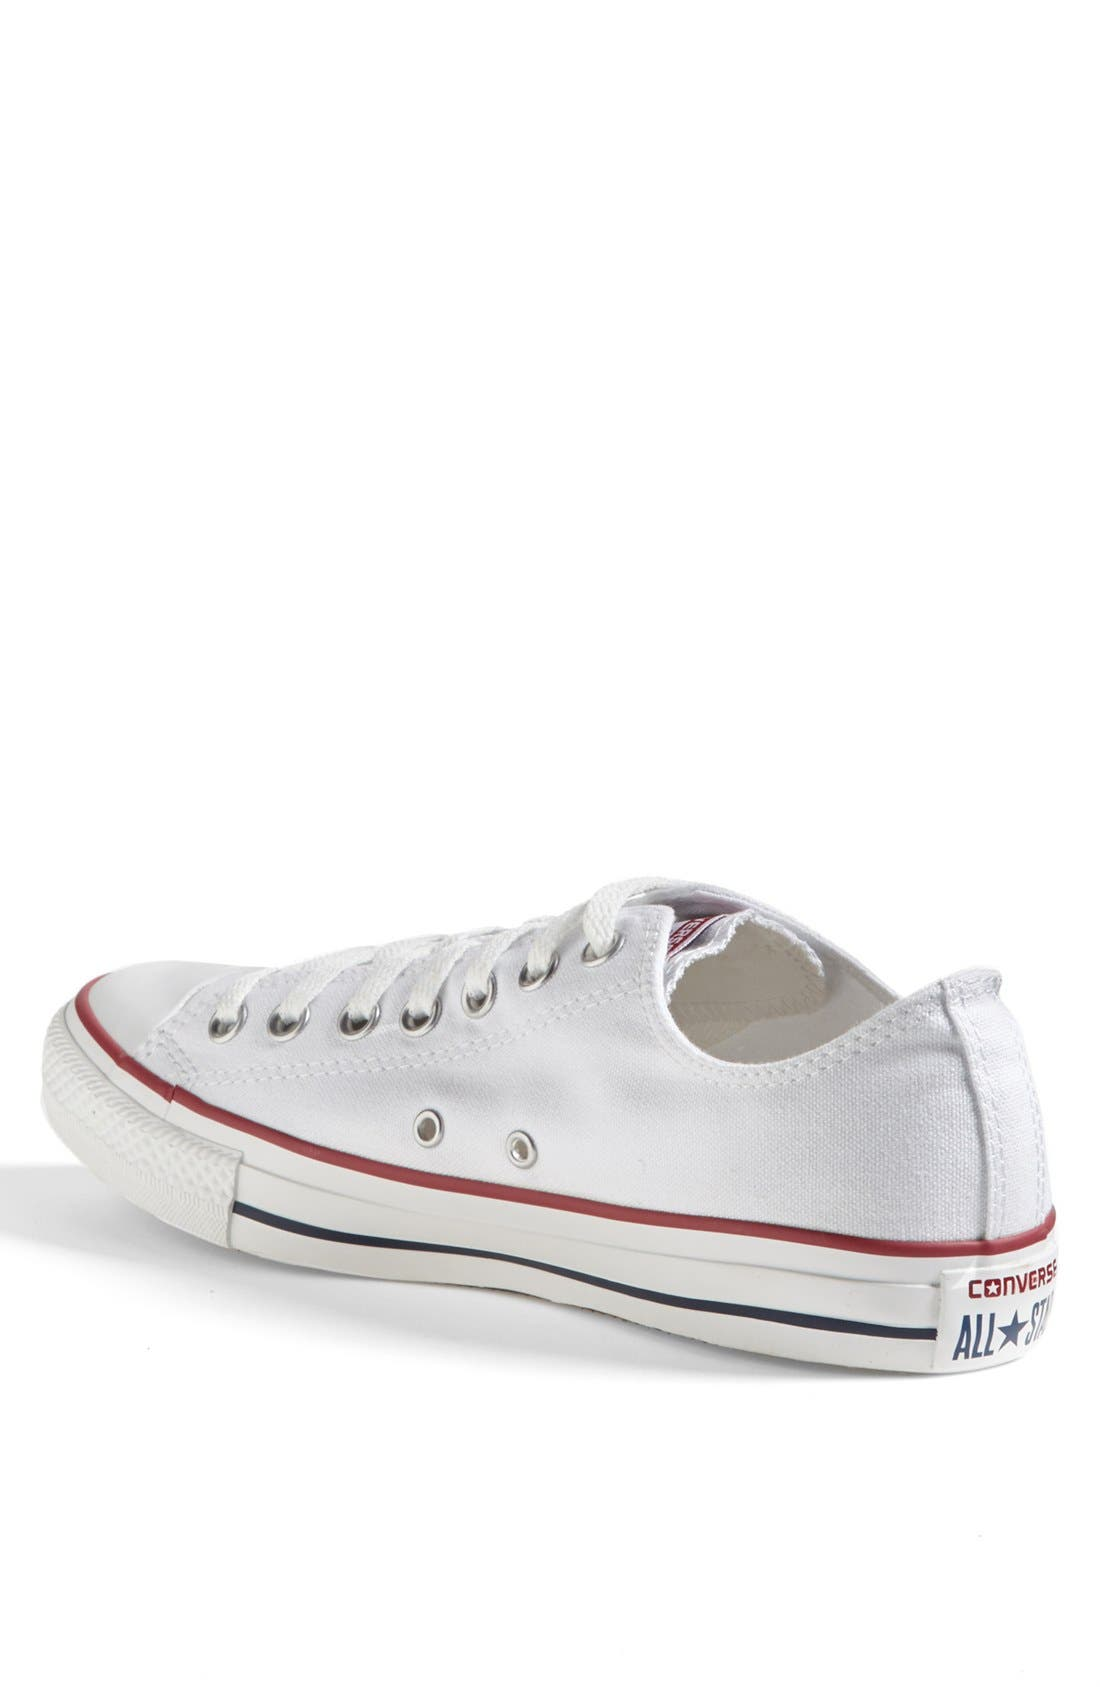 Chuck Taylor<sup>®</sup> Low Sneaker,                             Alternate thumbnail 2, color,                             White